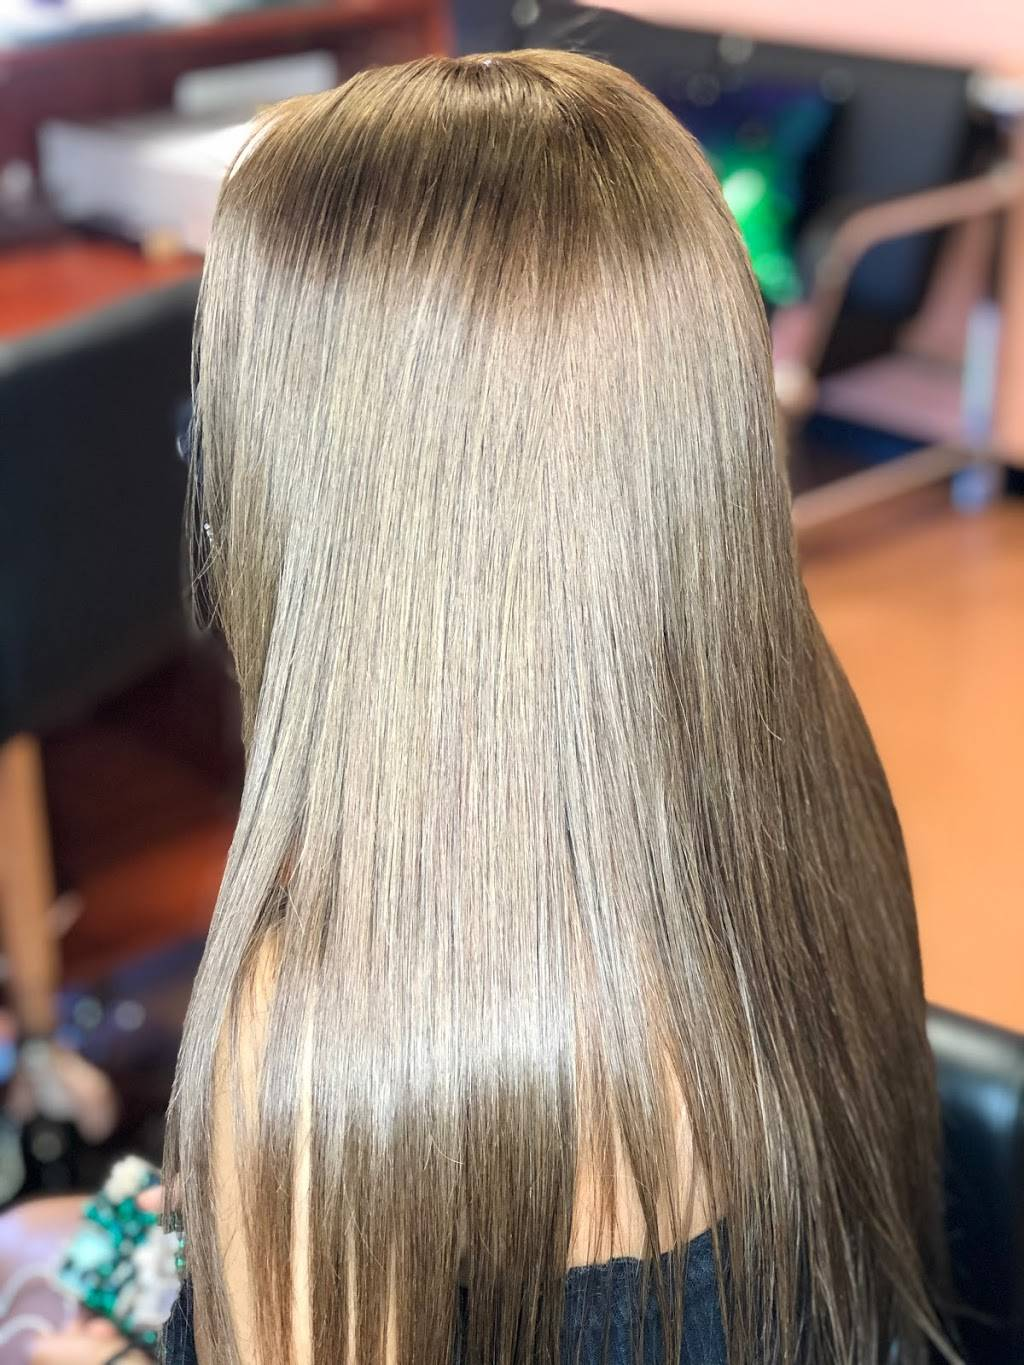 the Hair Scholars Salon - hair care  | Photo 8 of 8 | Address: 6017 Mableton Pkwy SW, Mableton, GA 30126, USA | Phone: (678) 437-5475